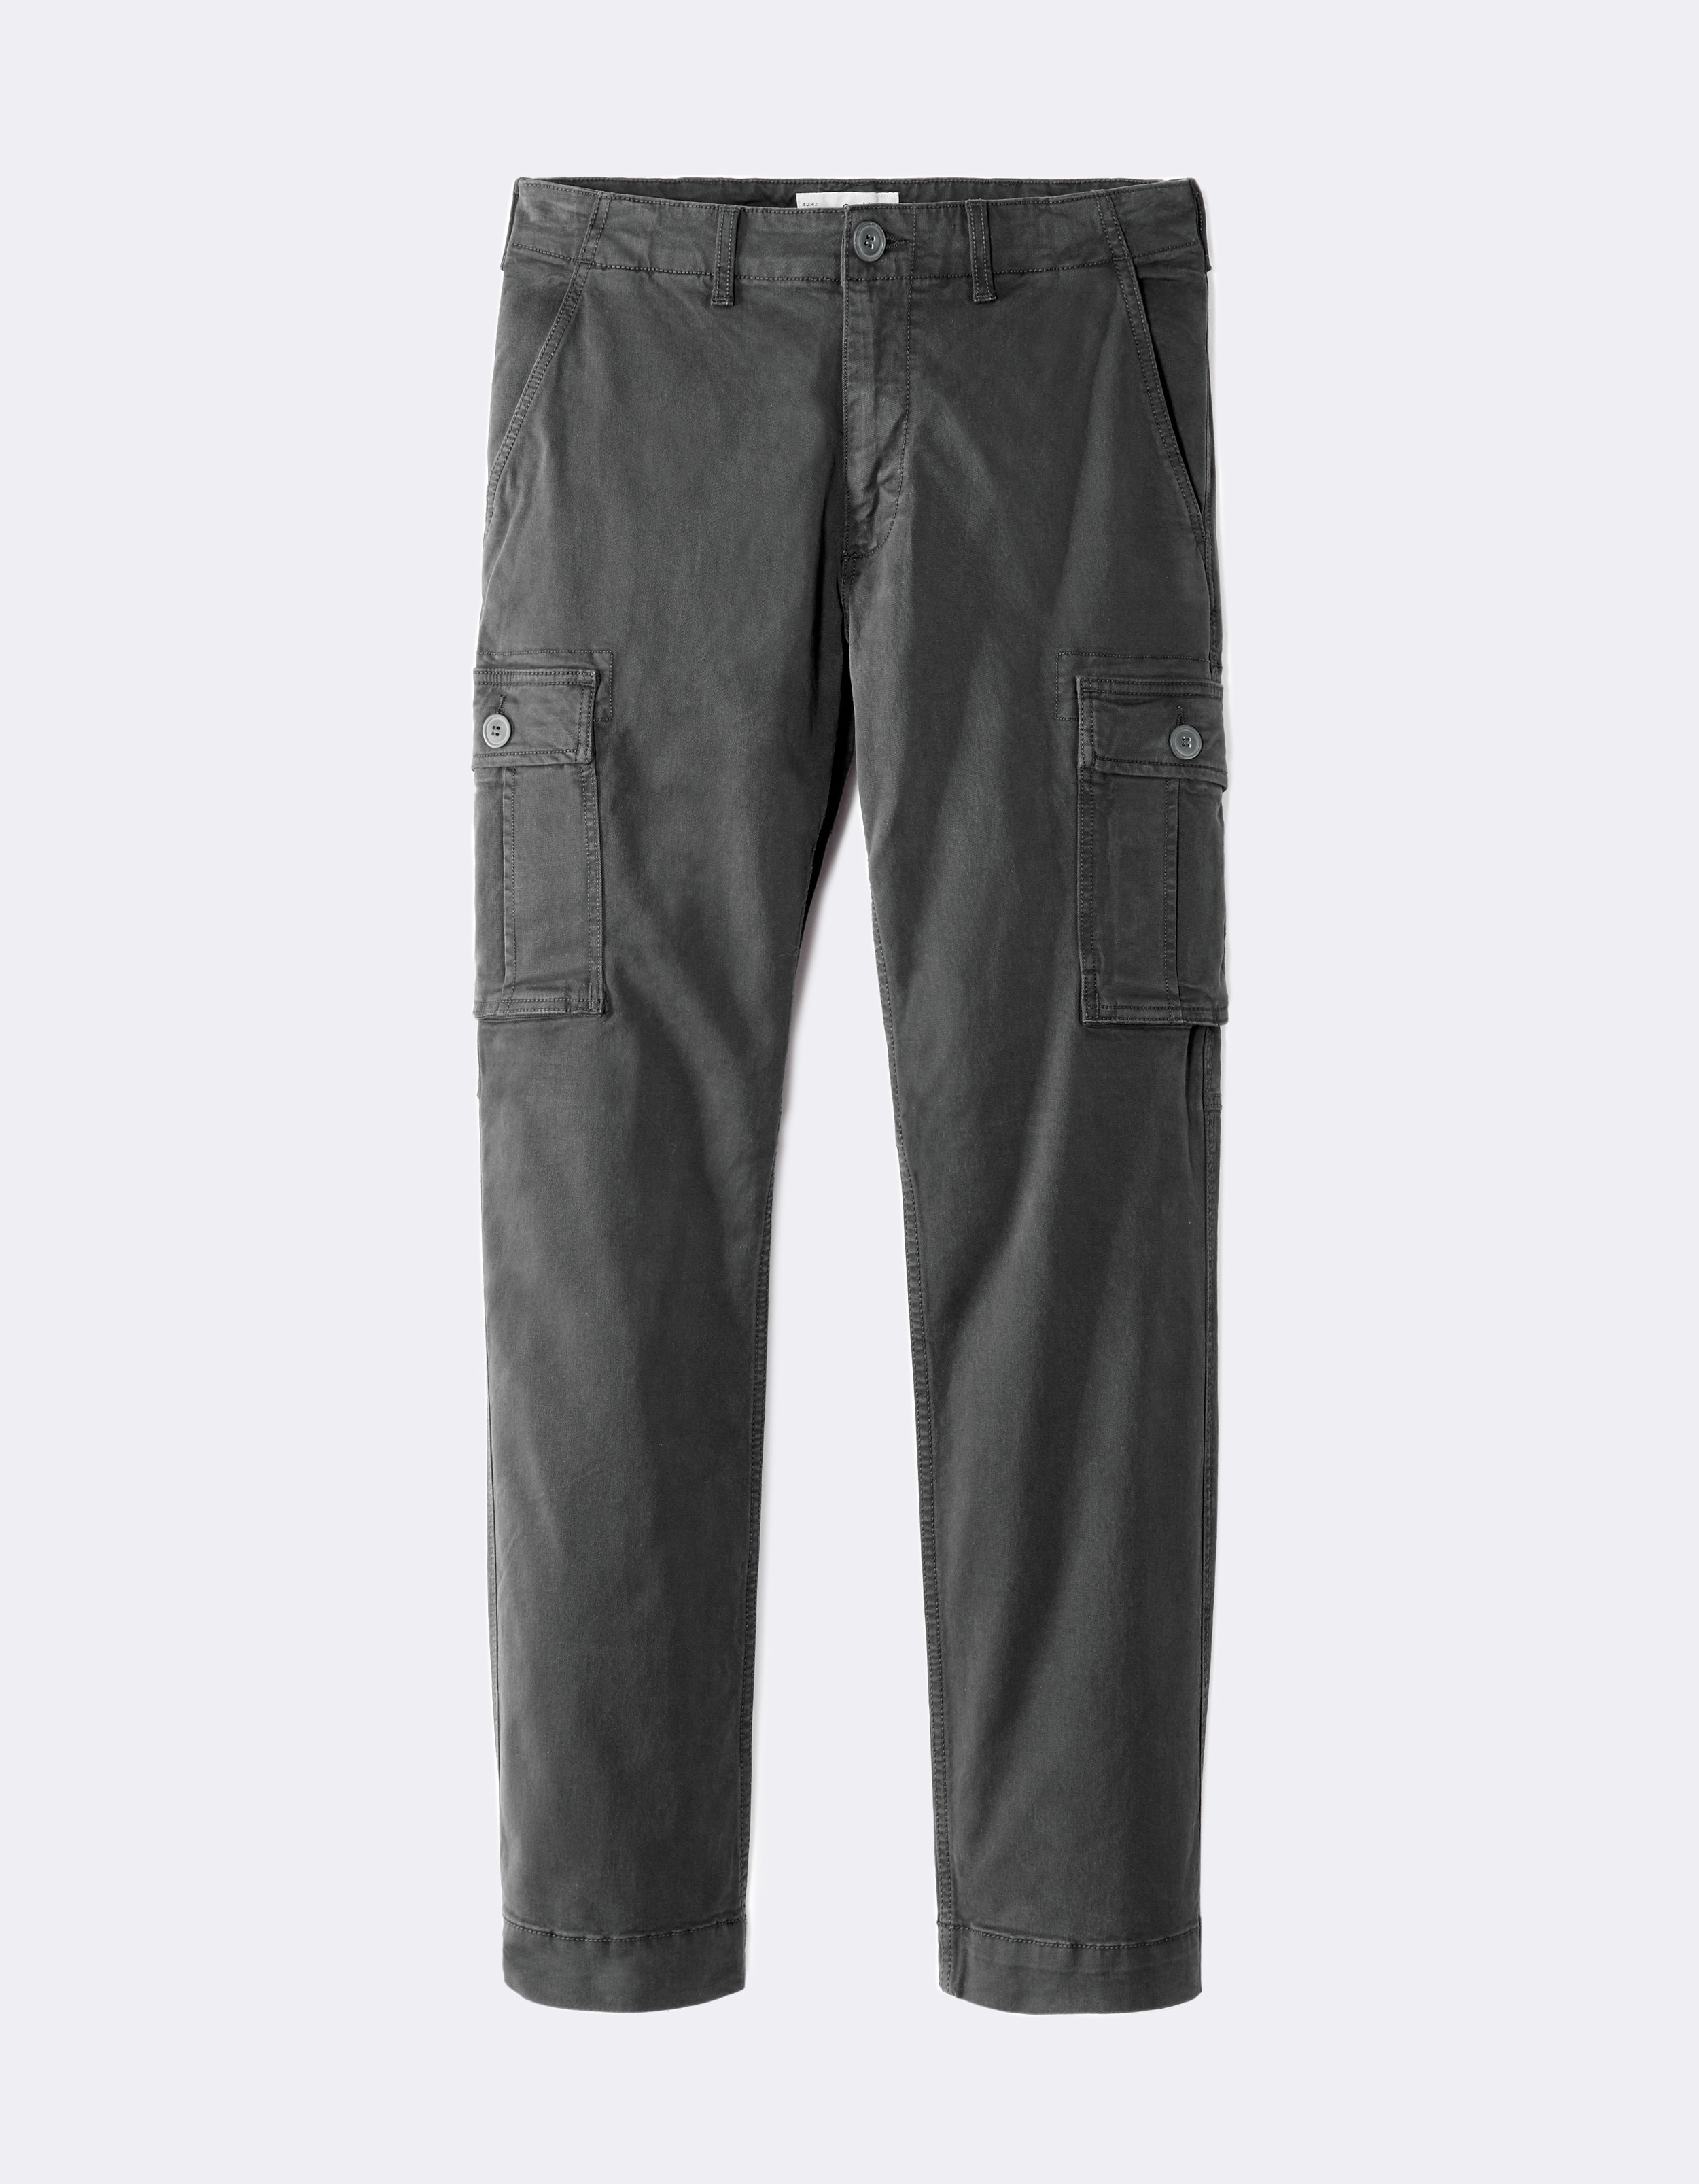 Pantalon Cargo straight 4 poches - LOBSCUR ANTHRACITE - Image à plat - Celio  France 6ebb032b7bf